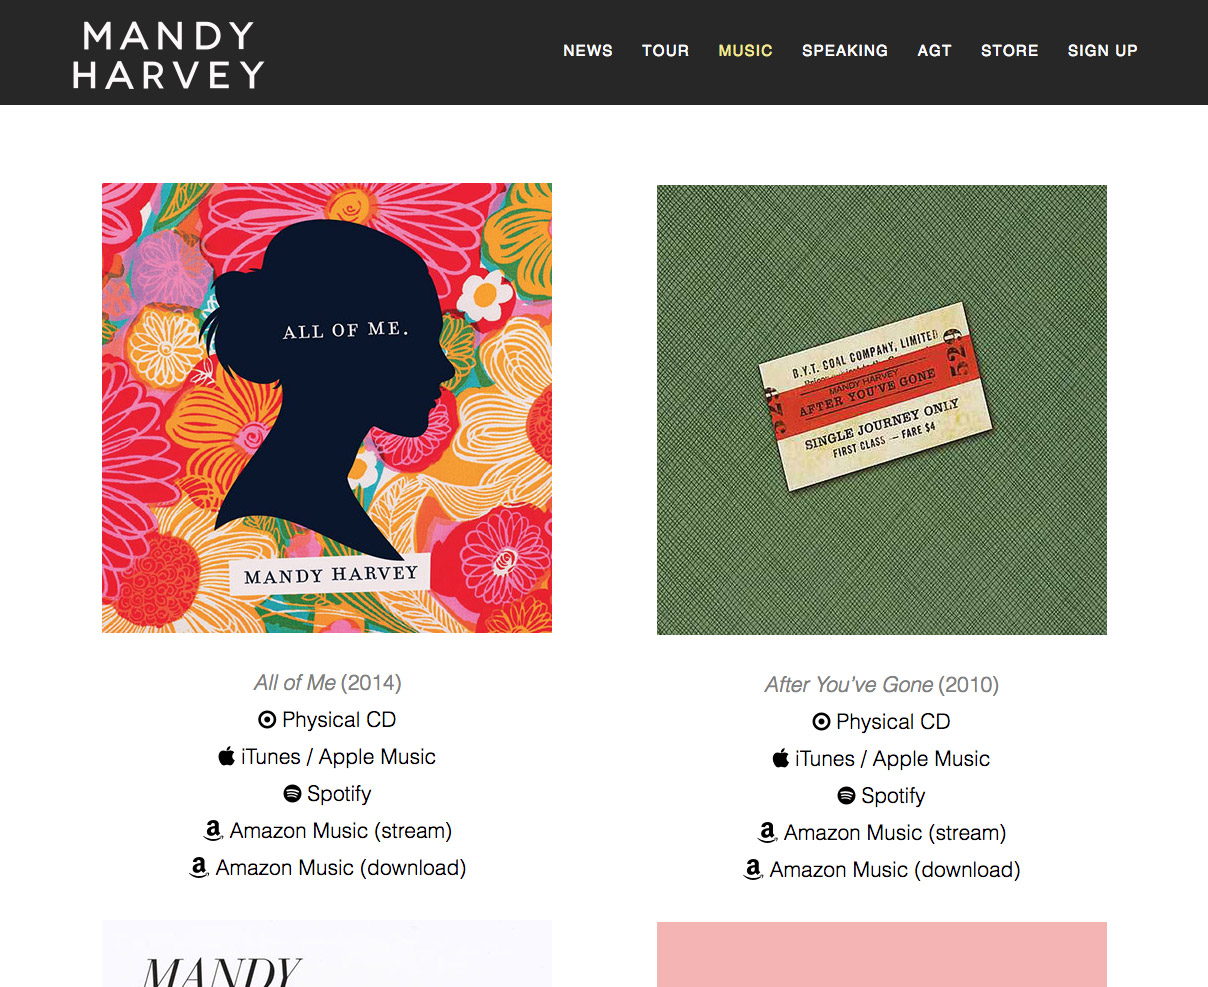 mandy harvey website screenshot of discography